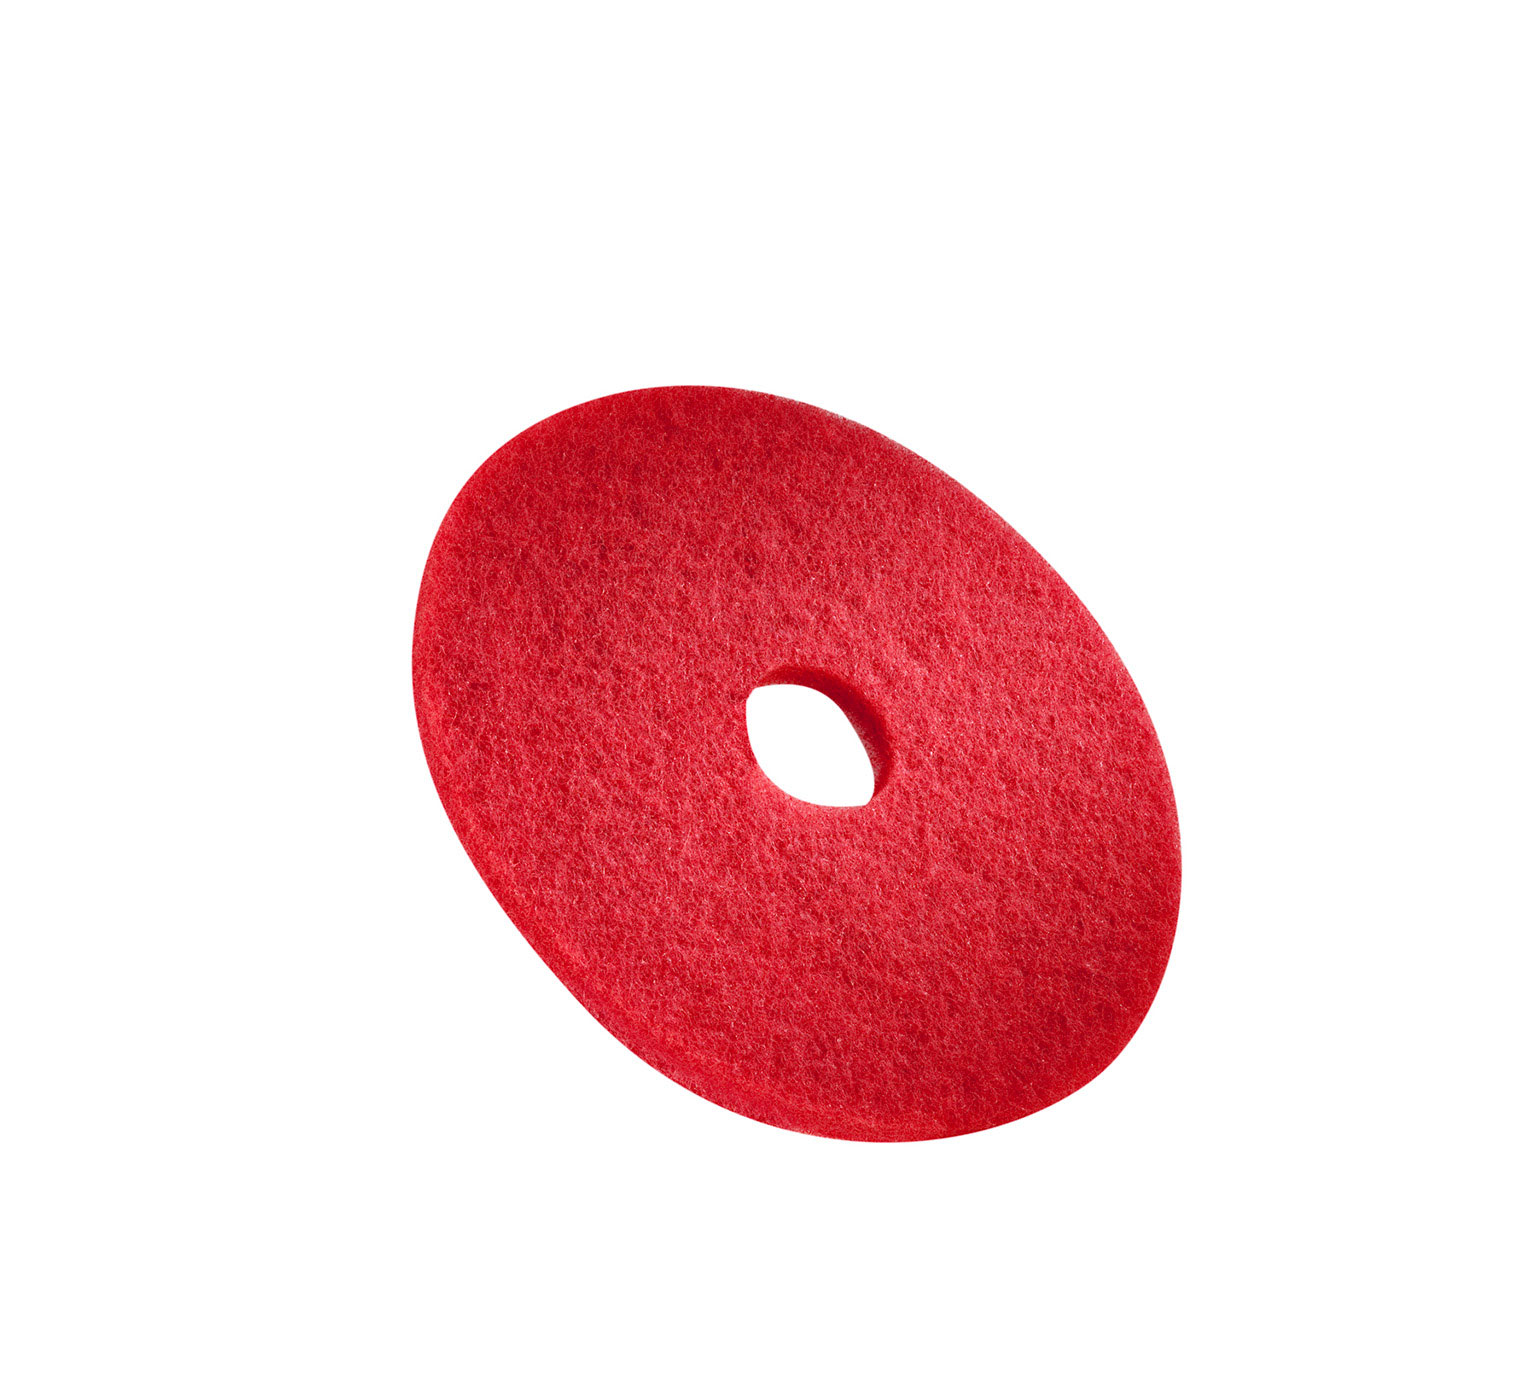 1050271 3M Red Buffing Pad – 17 in / 432 mm alt 1